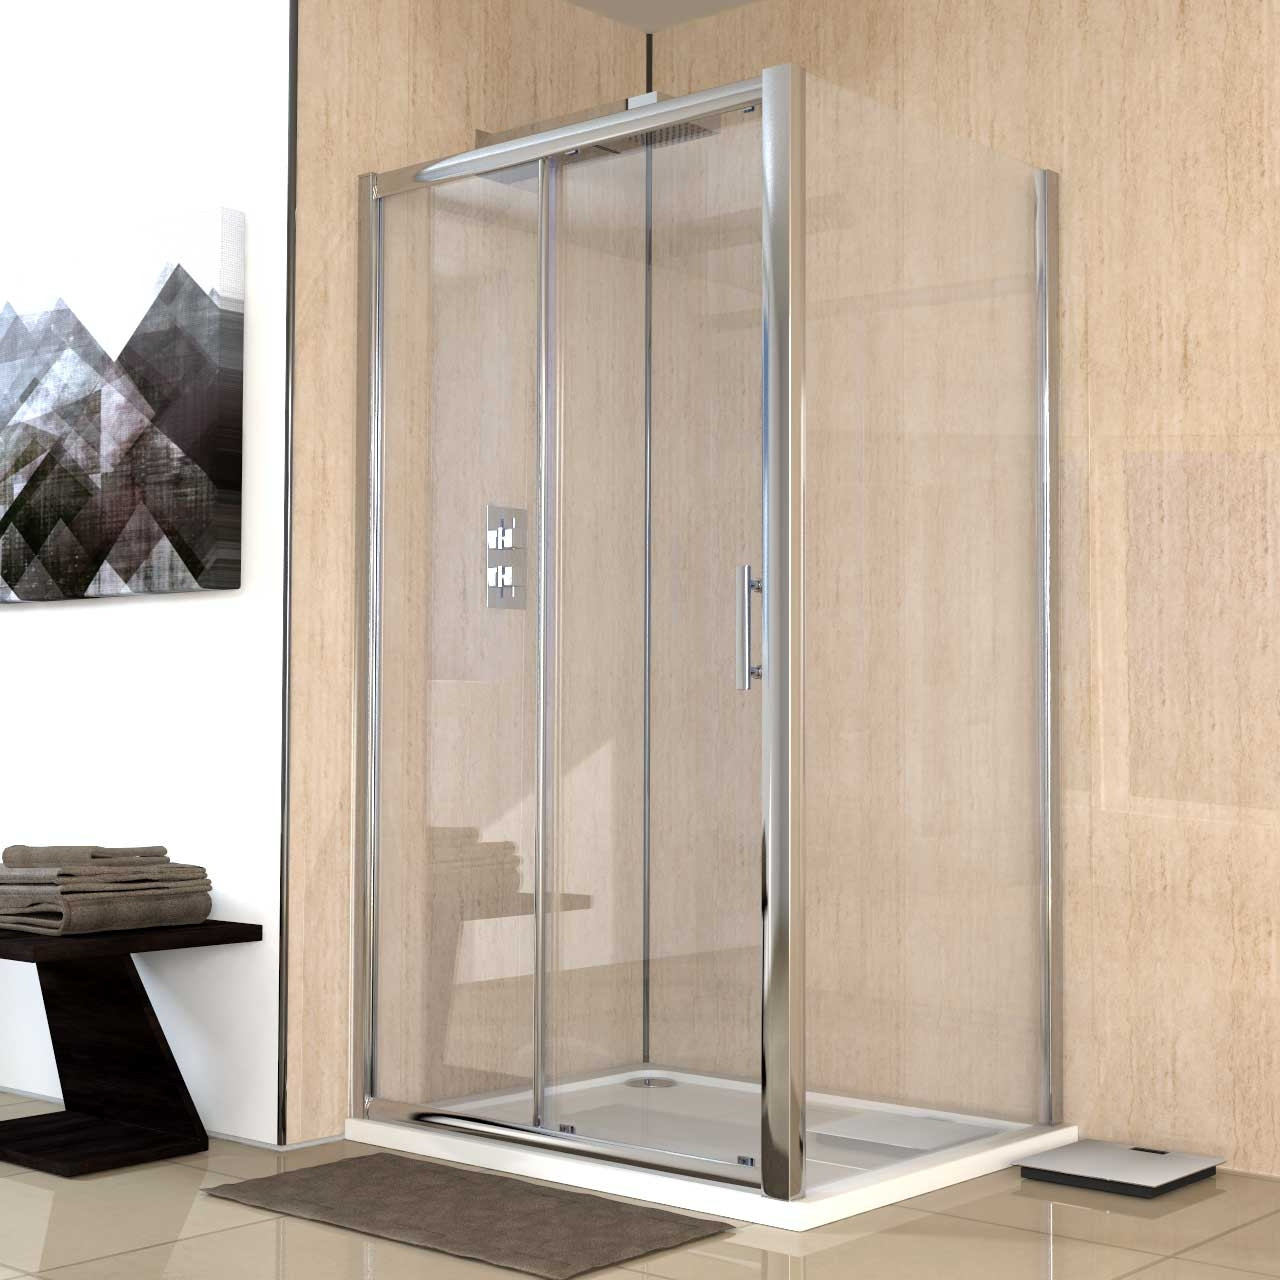 Series 6 1100mm x 900mm Sliding Door Shower Enclosure